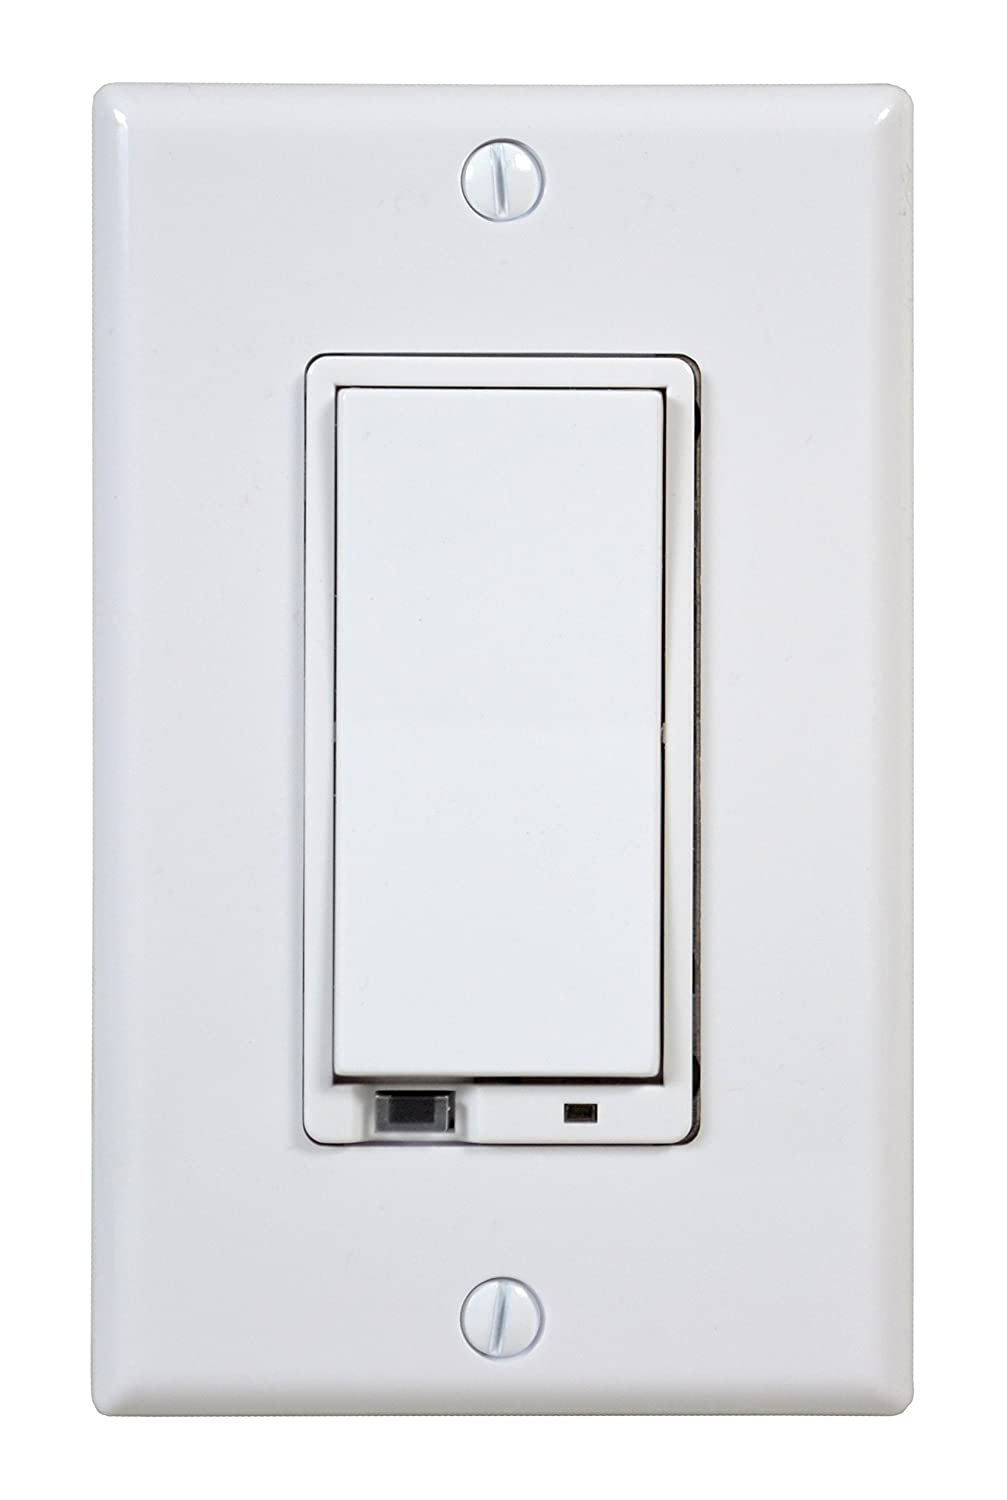 linear wd500z 1 z wave 500 watt wall mount dimmer switch small white new fr ebay. Black Bedroom Furniture Sets. Home Design Ideas